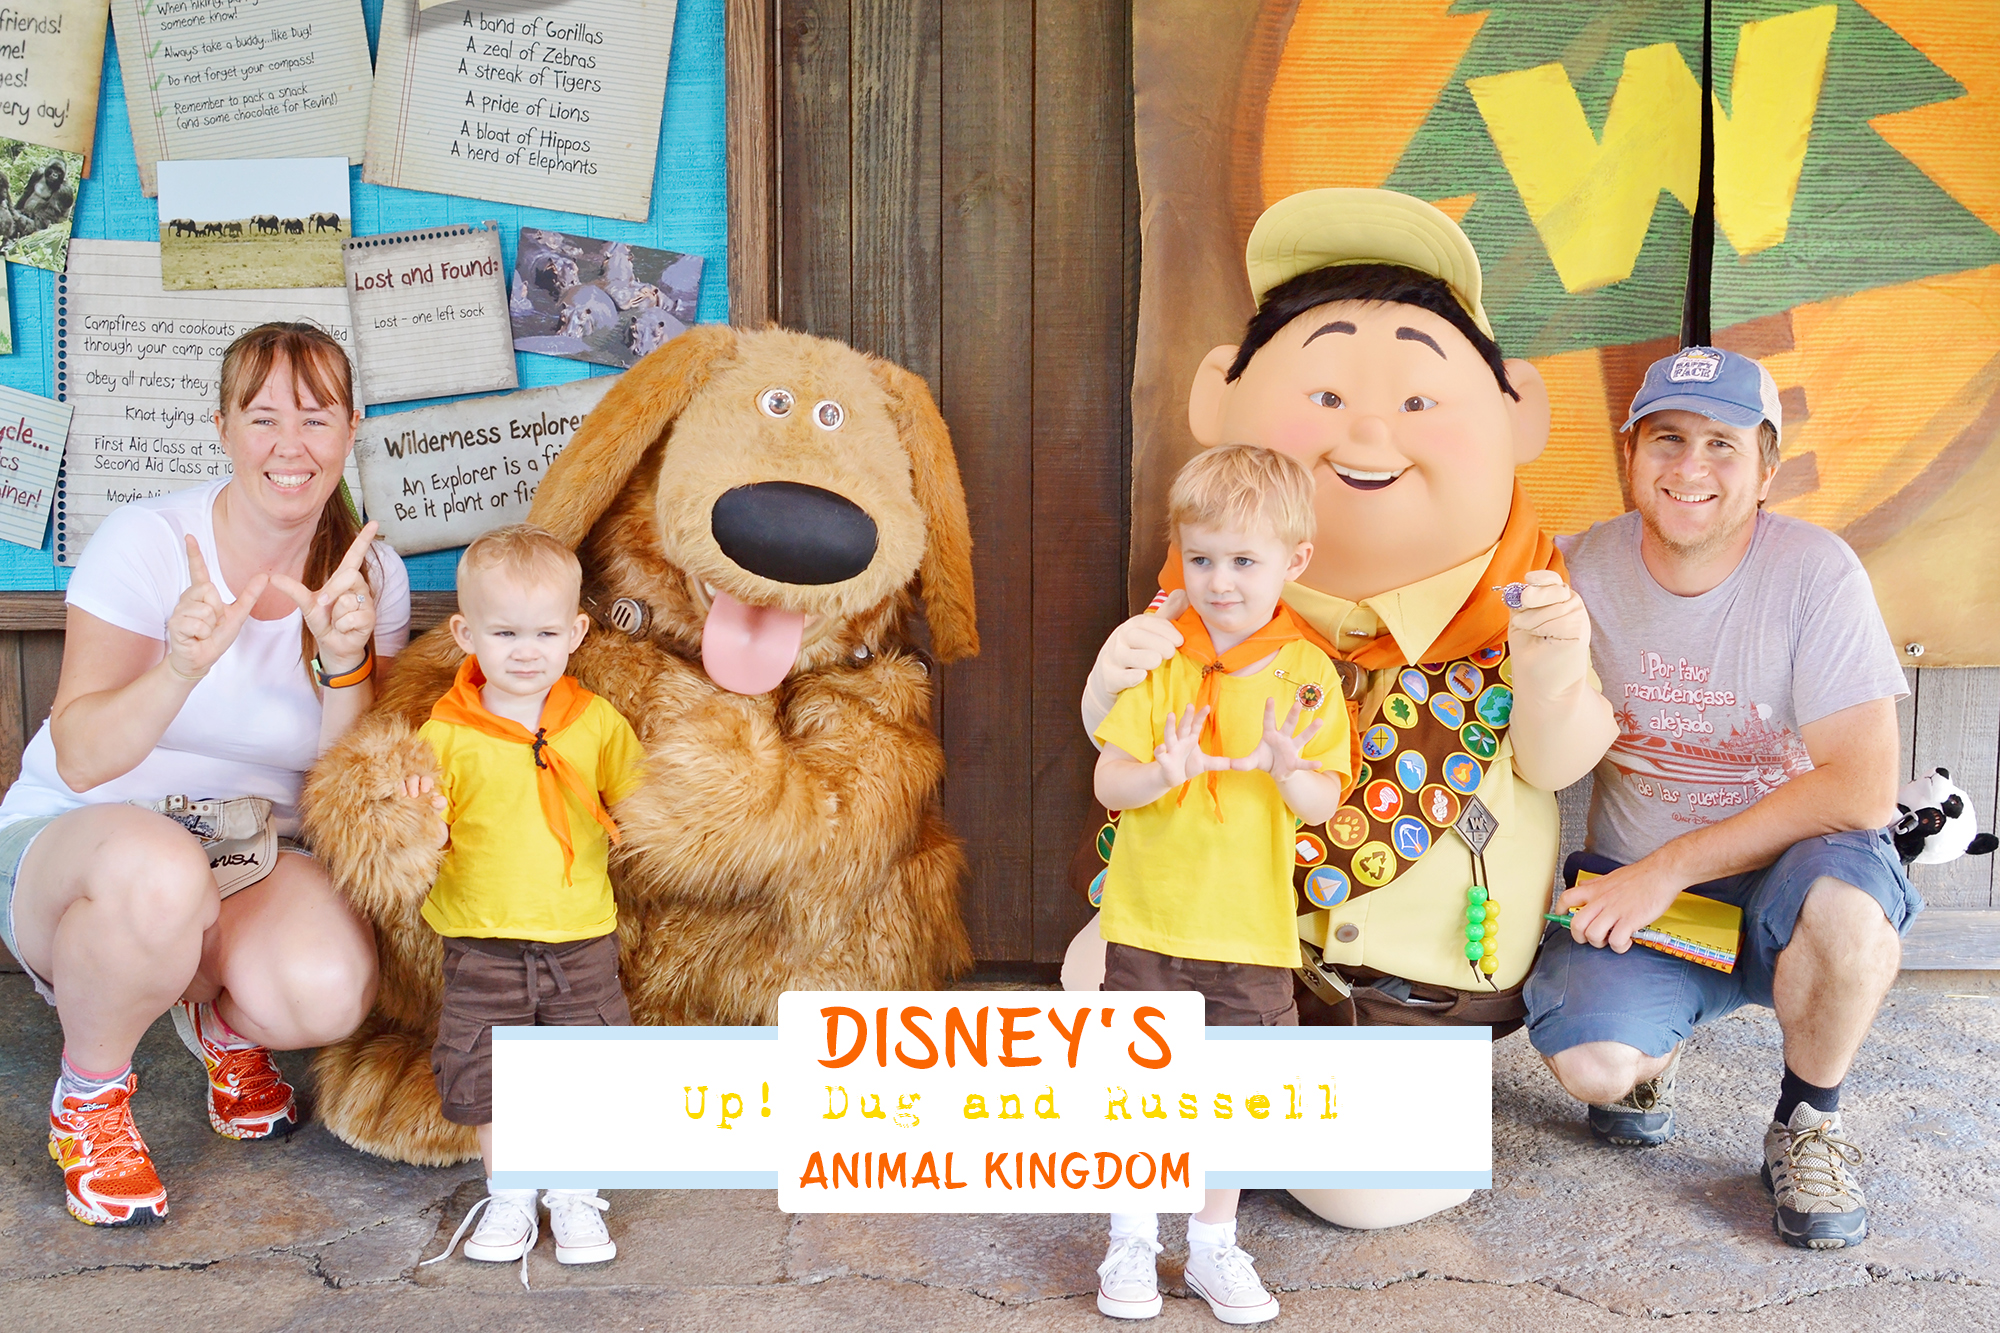 Meet Russell and Dug at the Wilderness Explorers Club House in Disney's Animal Kingdom